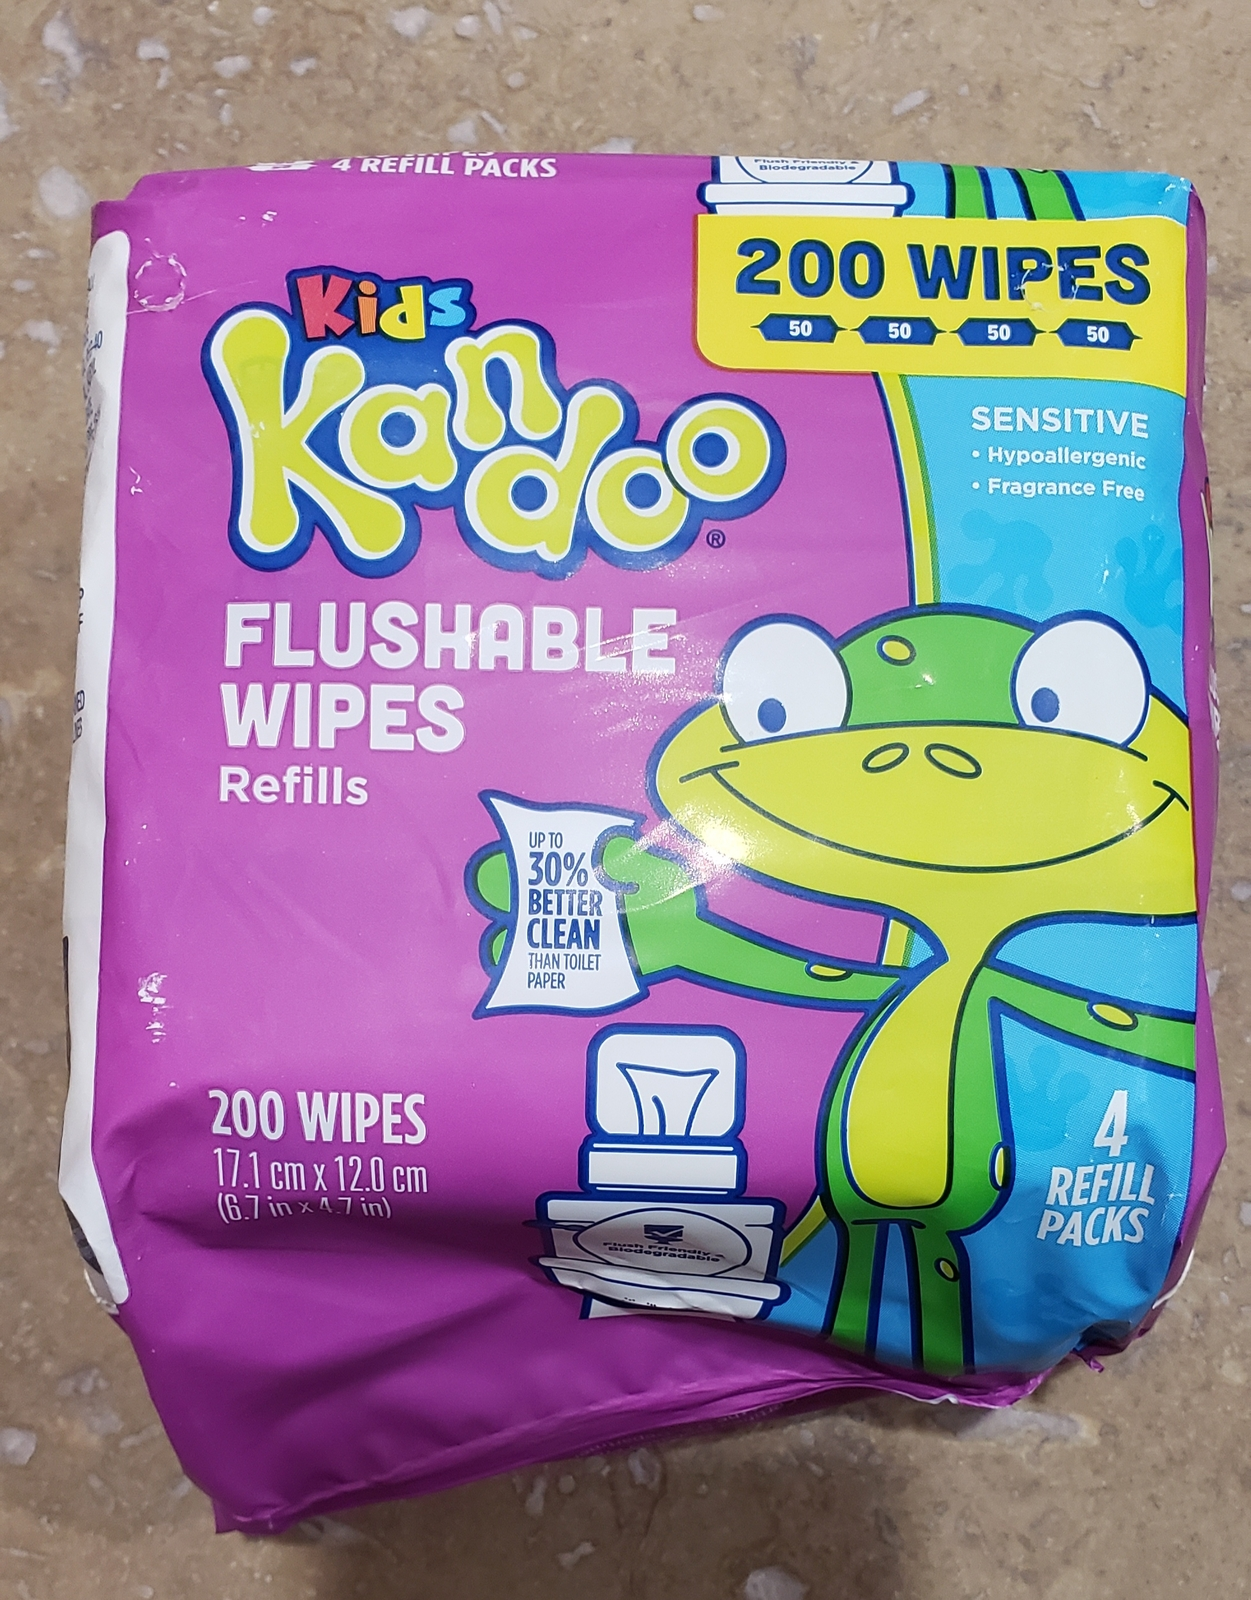 Primary image for Kandoo Kids Flushable Wipes Sensitive 200 Wipe 4 Resealable Packs of 50 Wipes